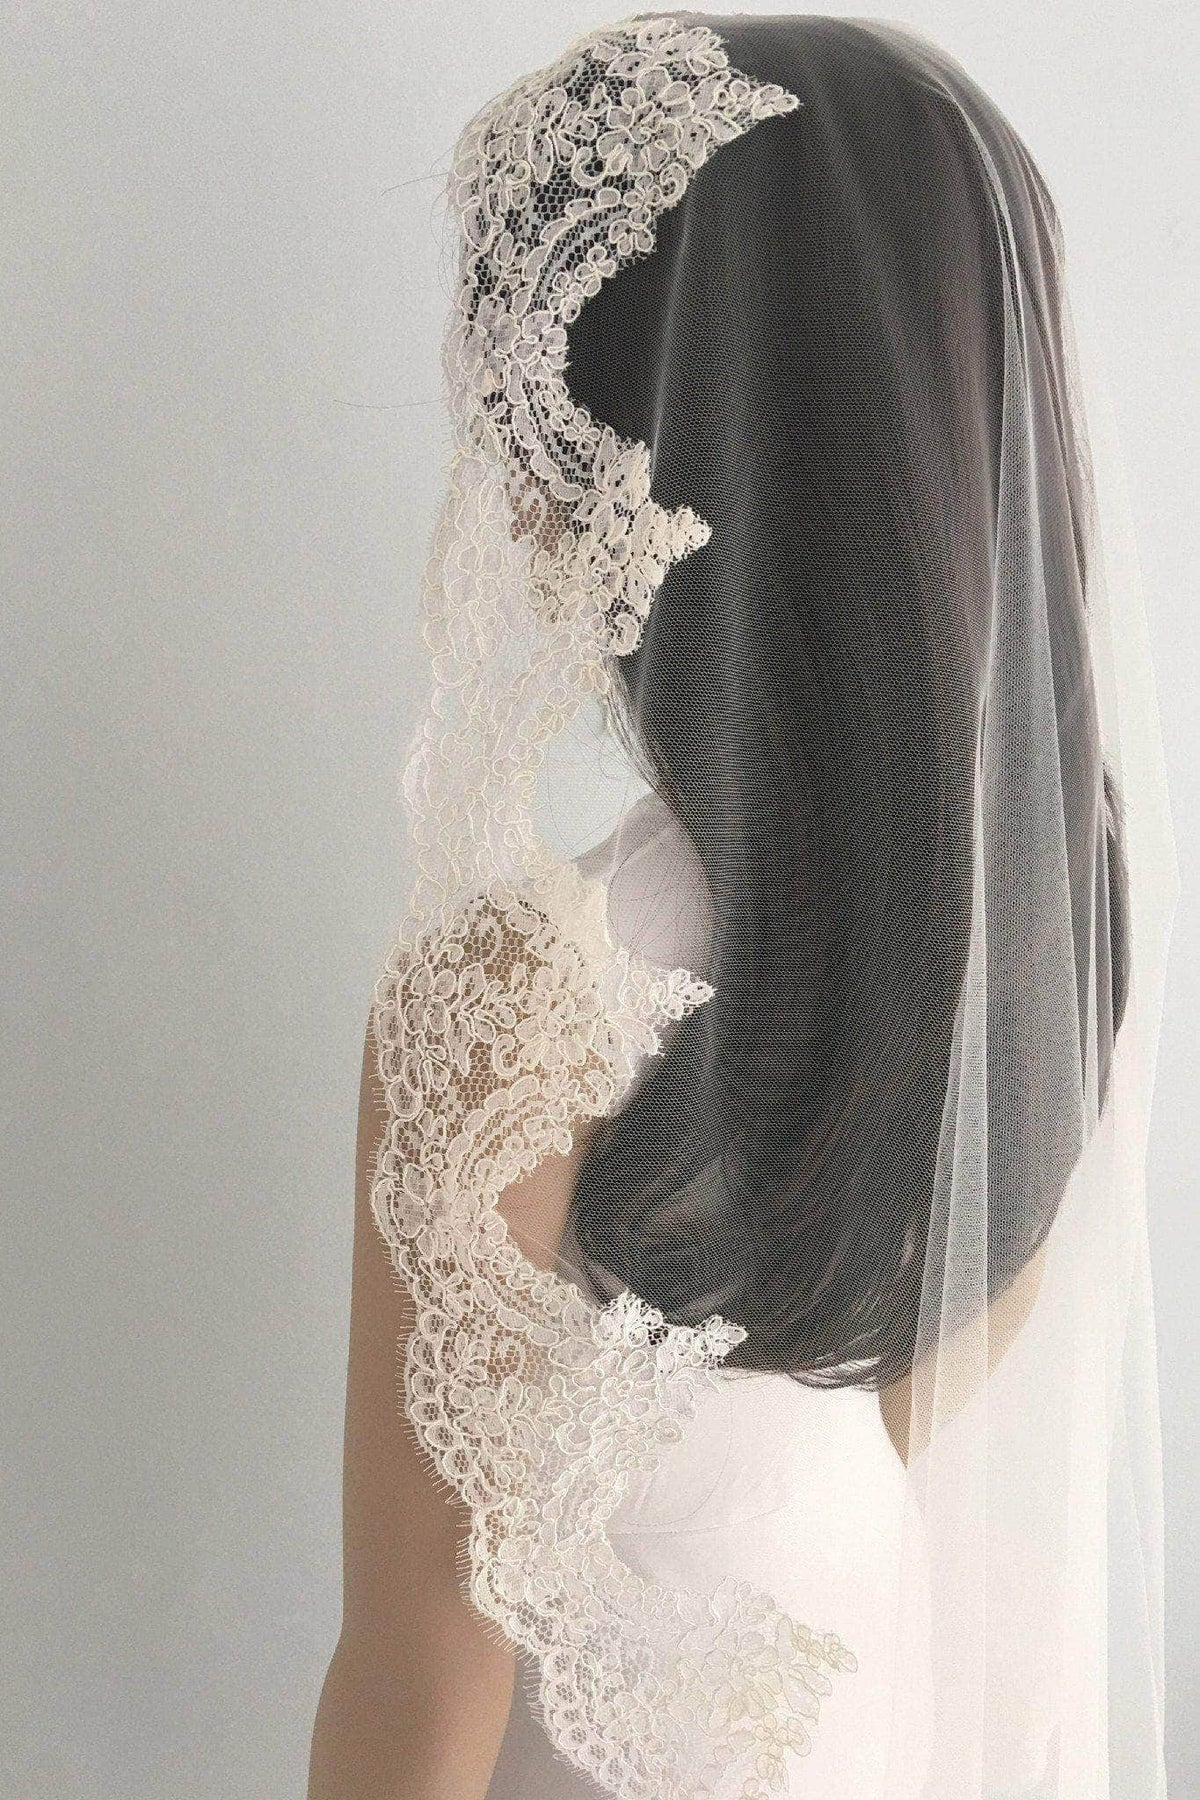 mantilla wedding veil lace edge